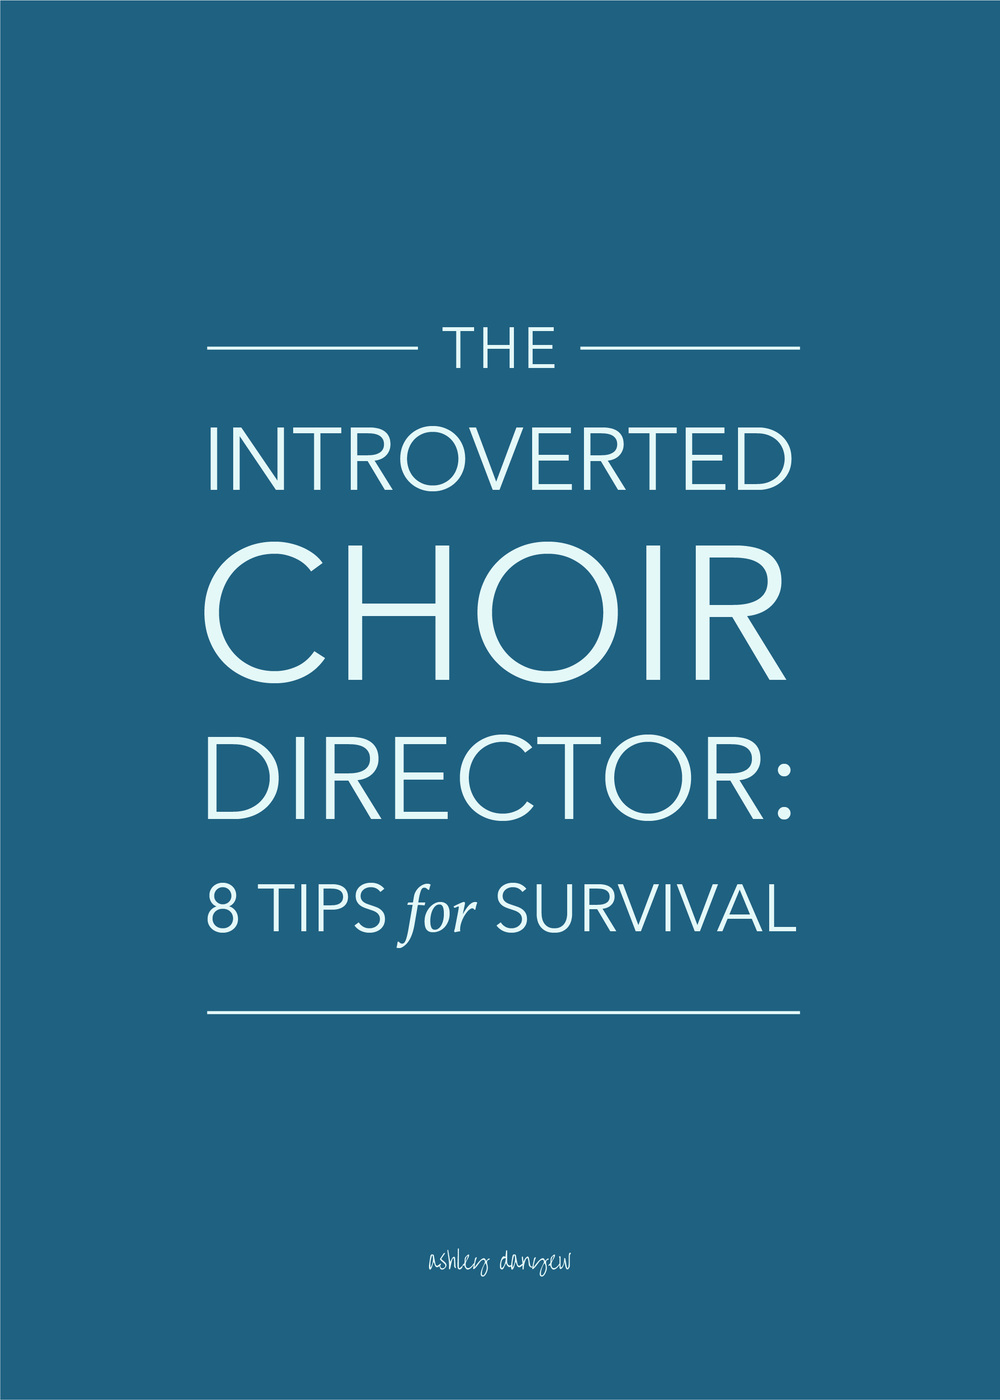 The Introverted Choir Director: 8 Tips for Survival